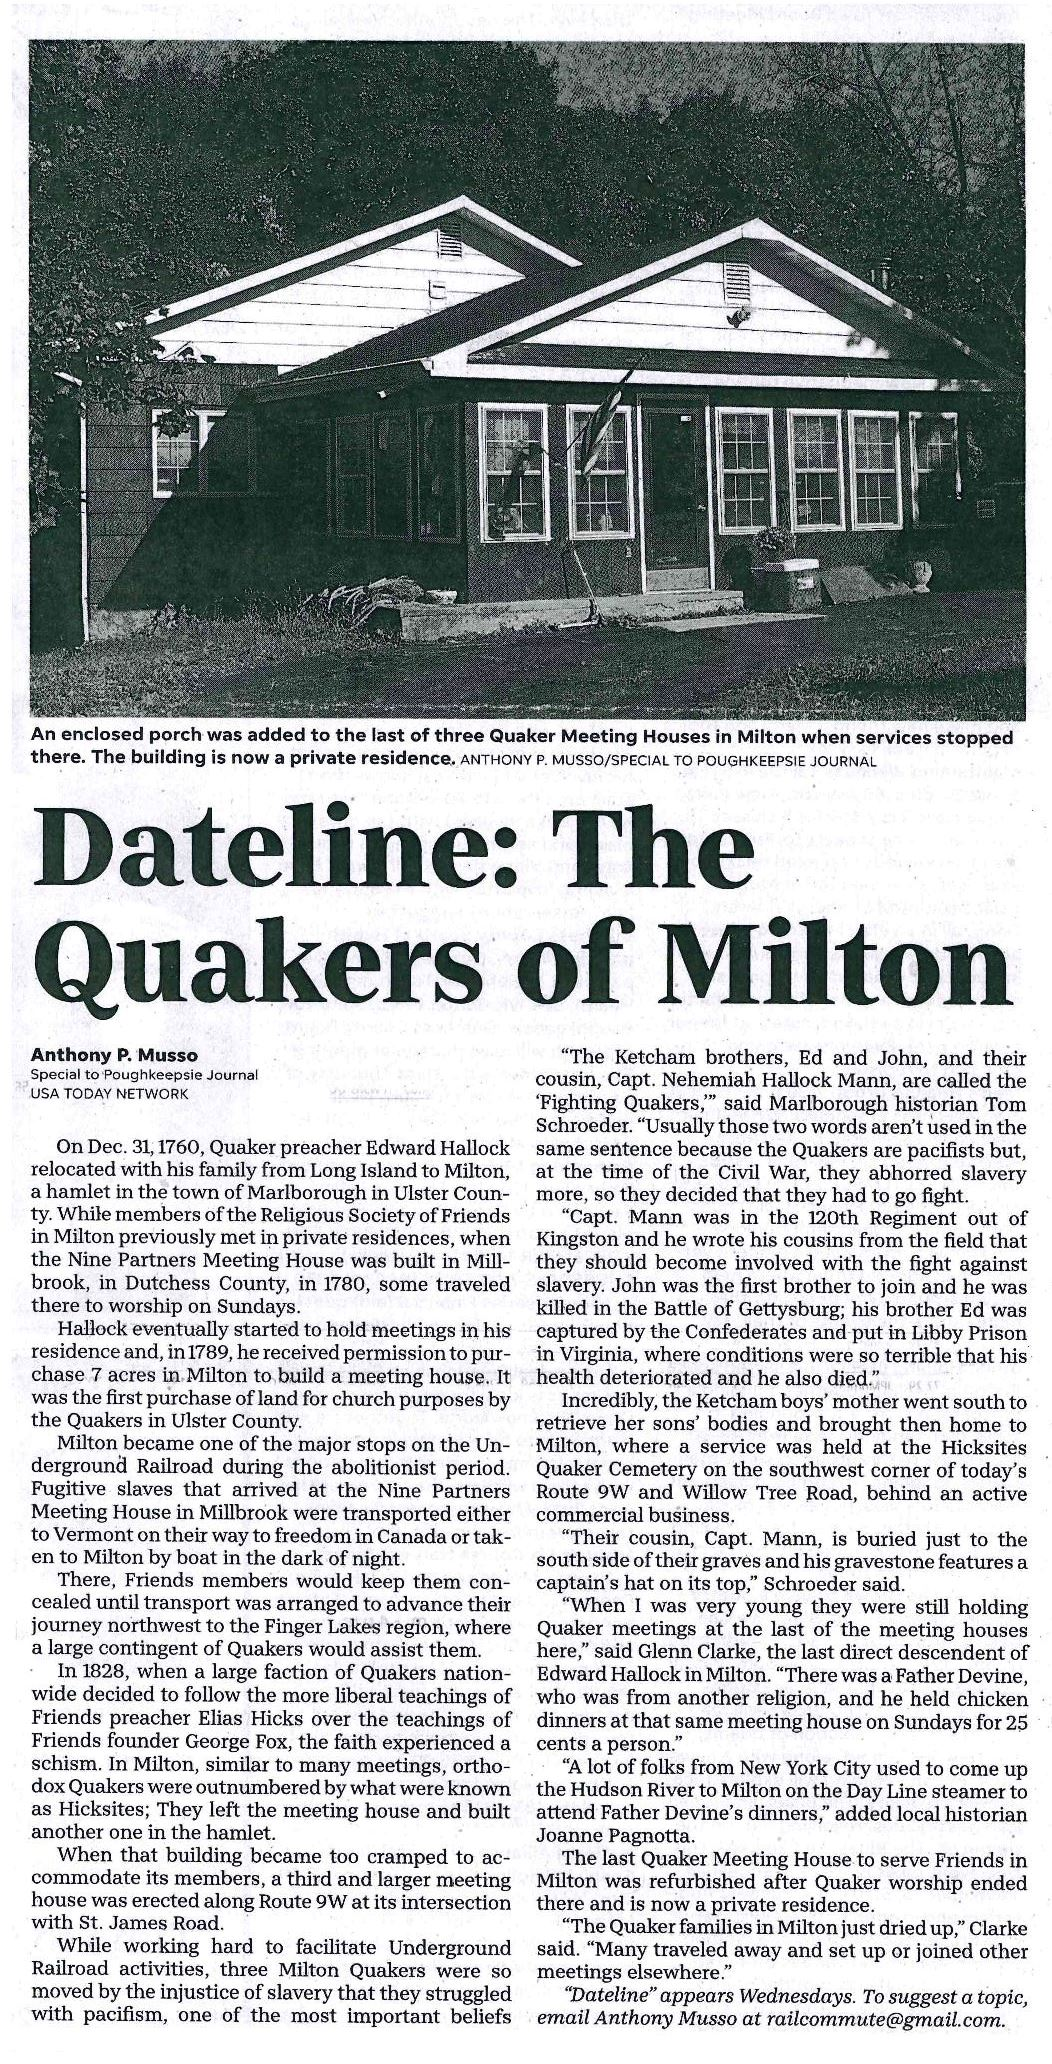 Dateline. The Quakers of Milton